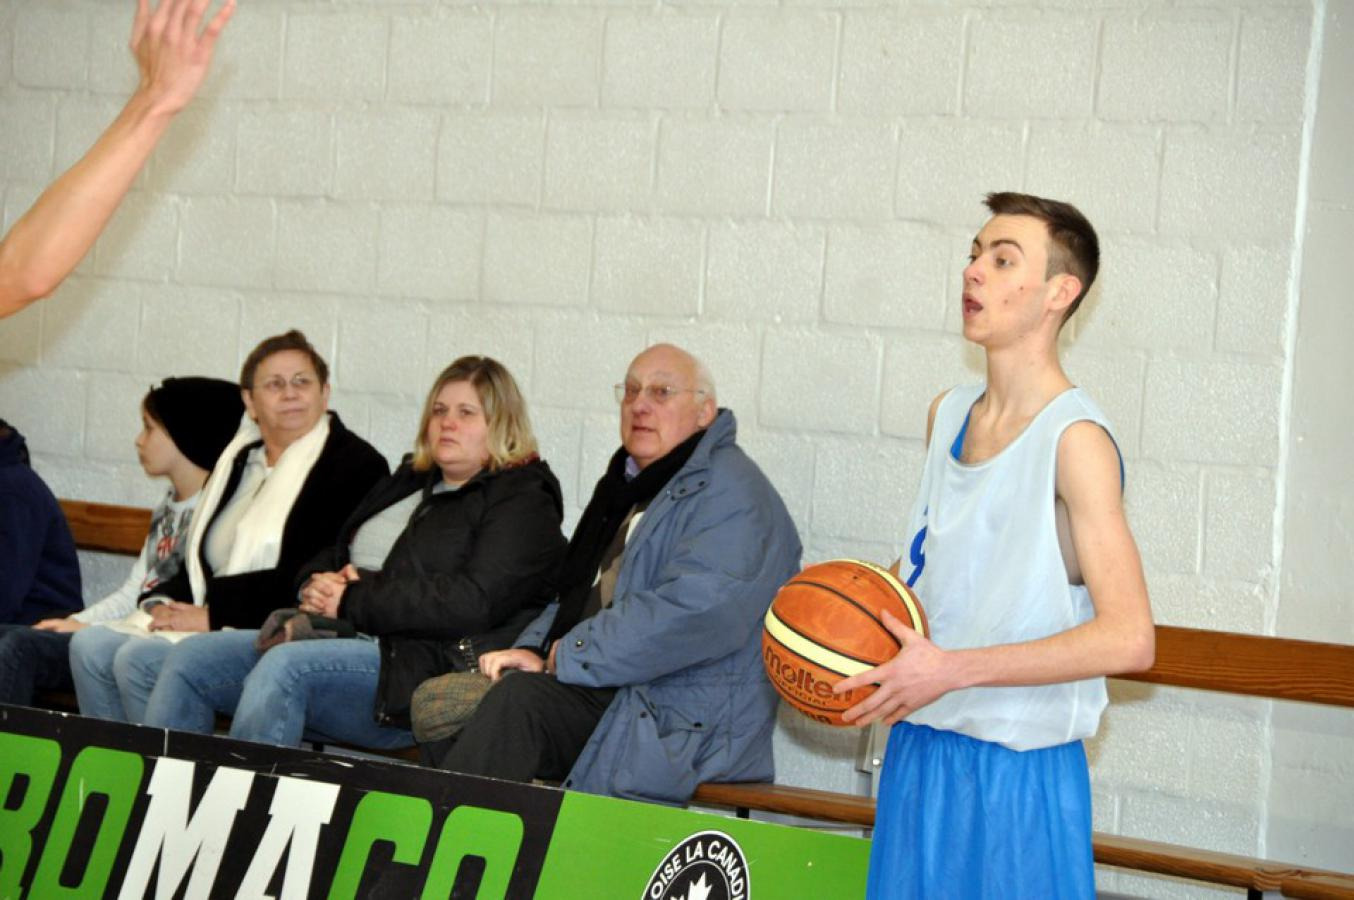 19/01/19 : U17G AWBB CINEY / ECOLE EUROPEENNE